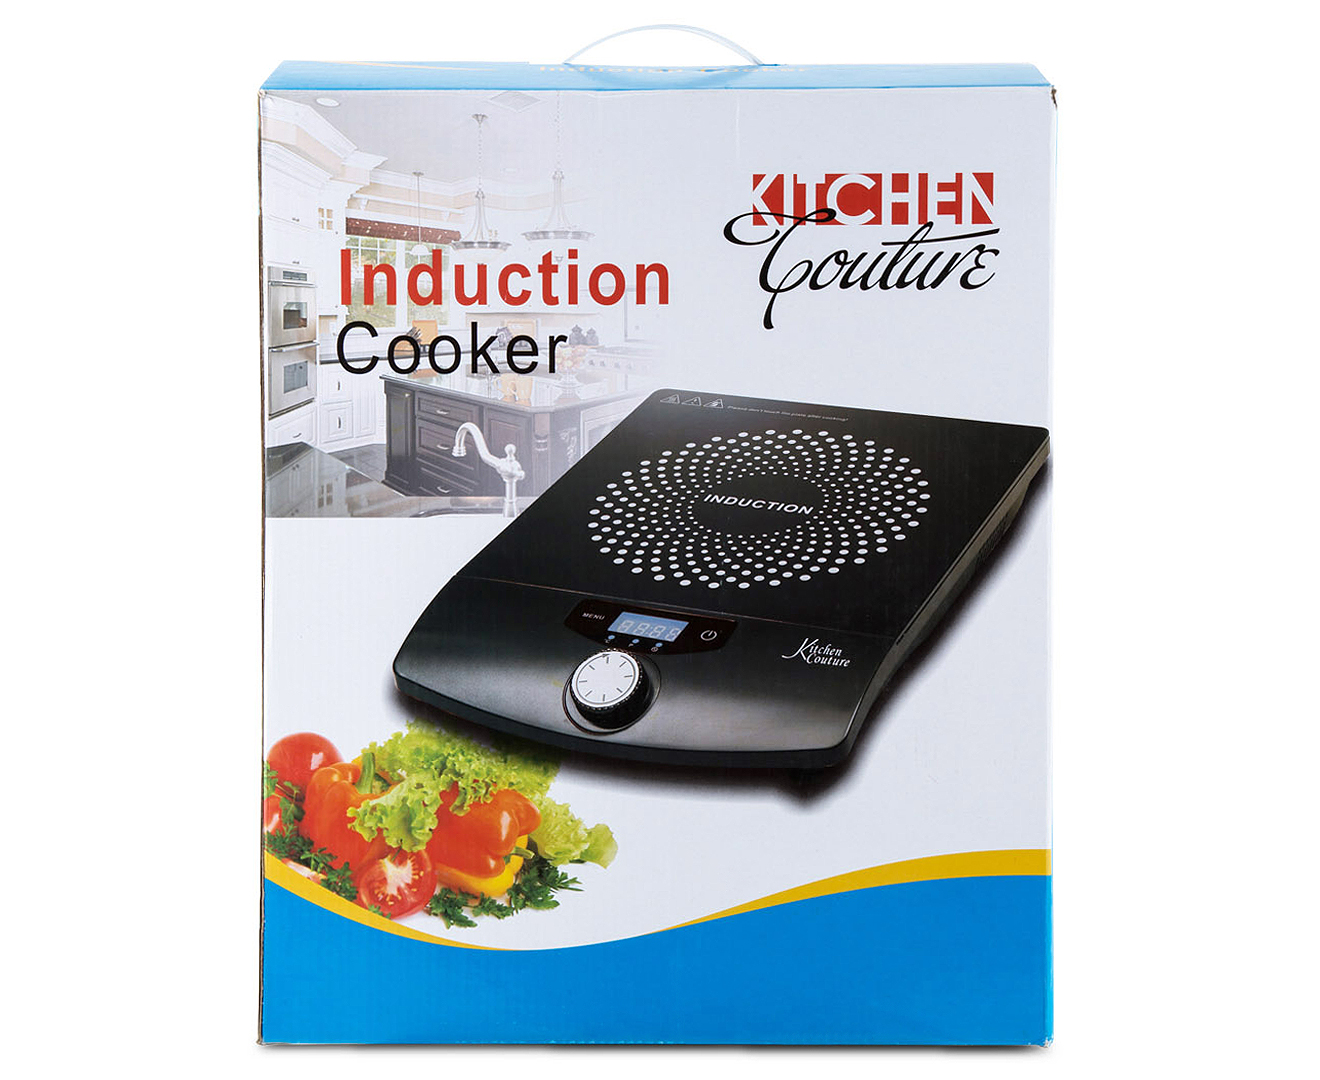 kitchen couture induction cooker instructions